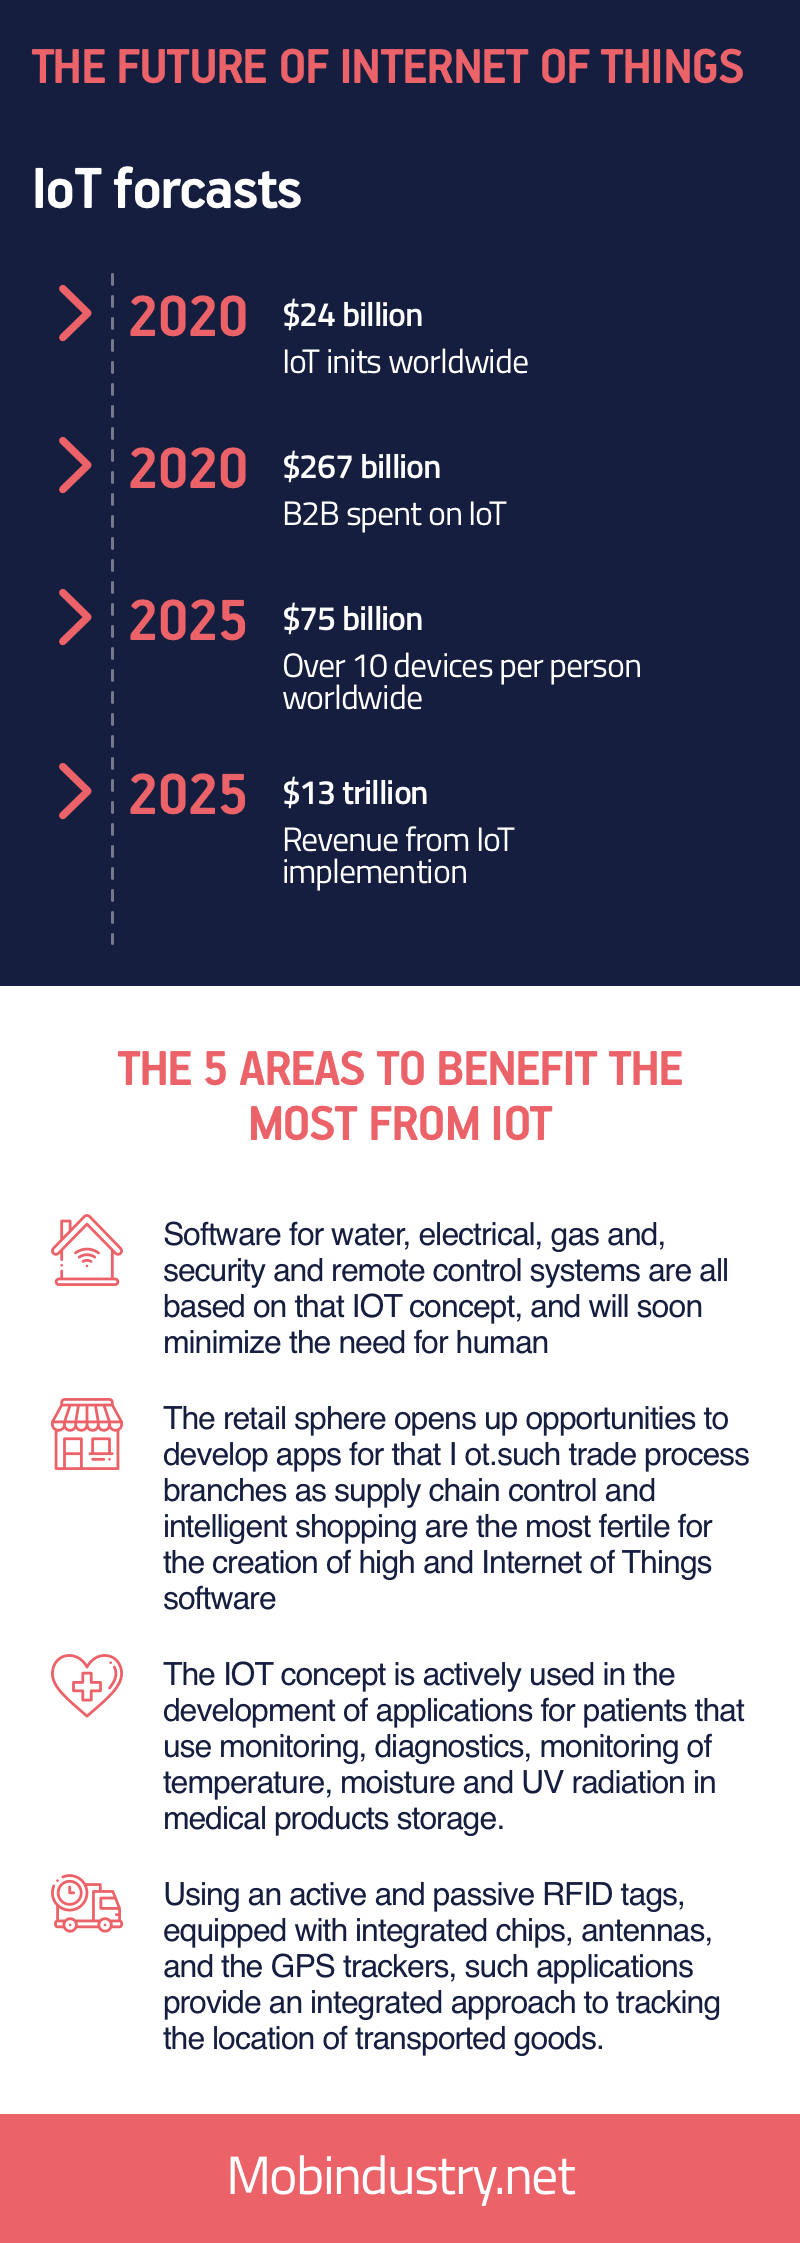 internet of things forecast 2020